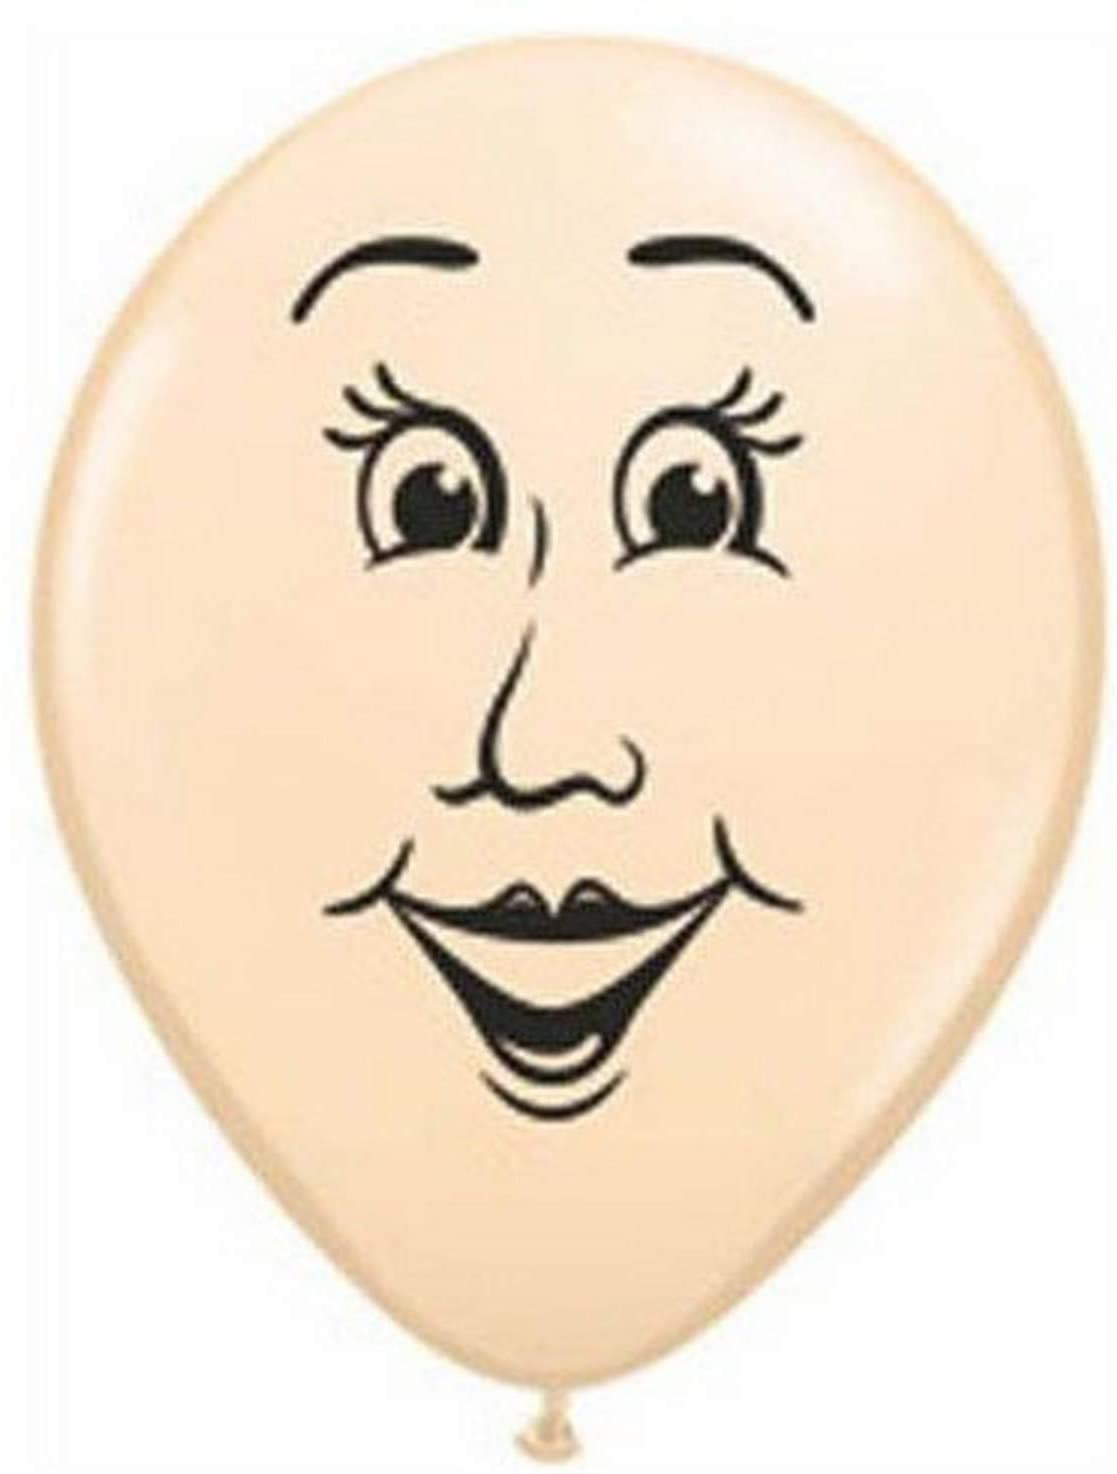 BALÃO DE LÁTEX WOMAN'S FACE 5 POLEGADAS - PC 100UN - QUALATEX #99310